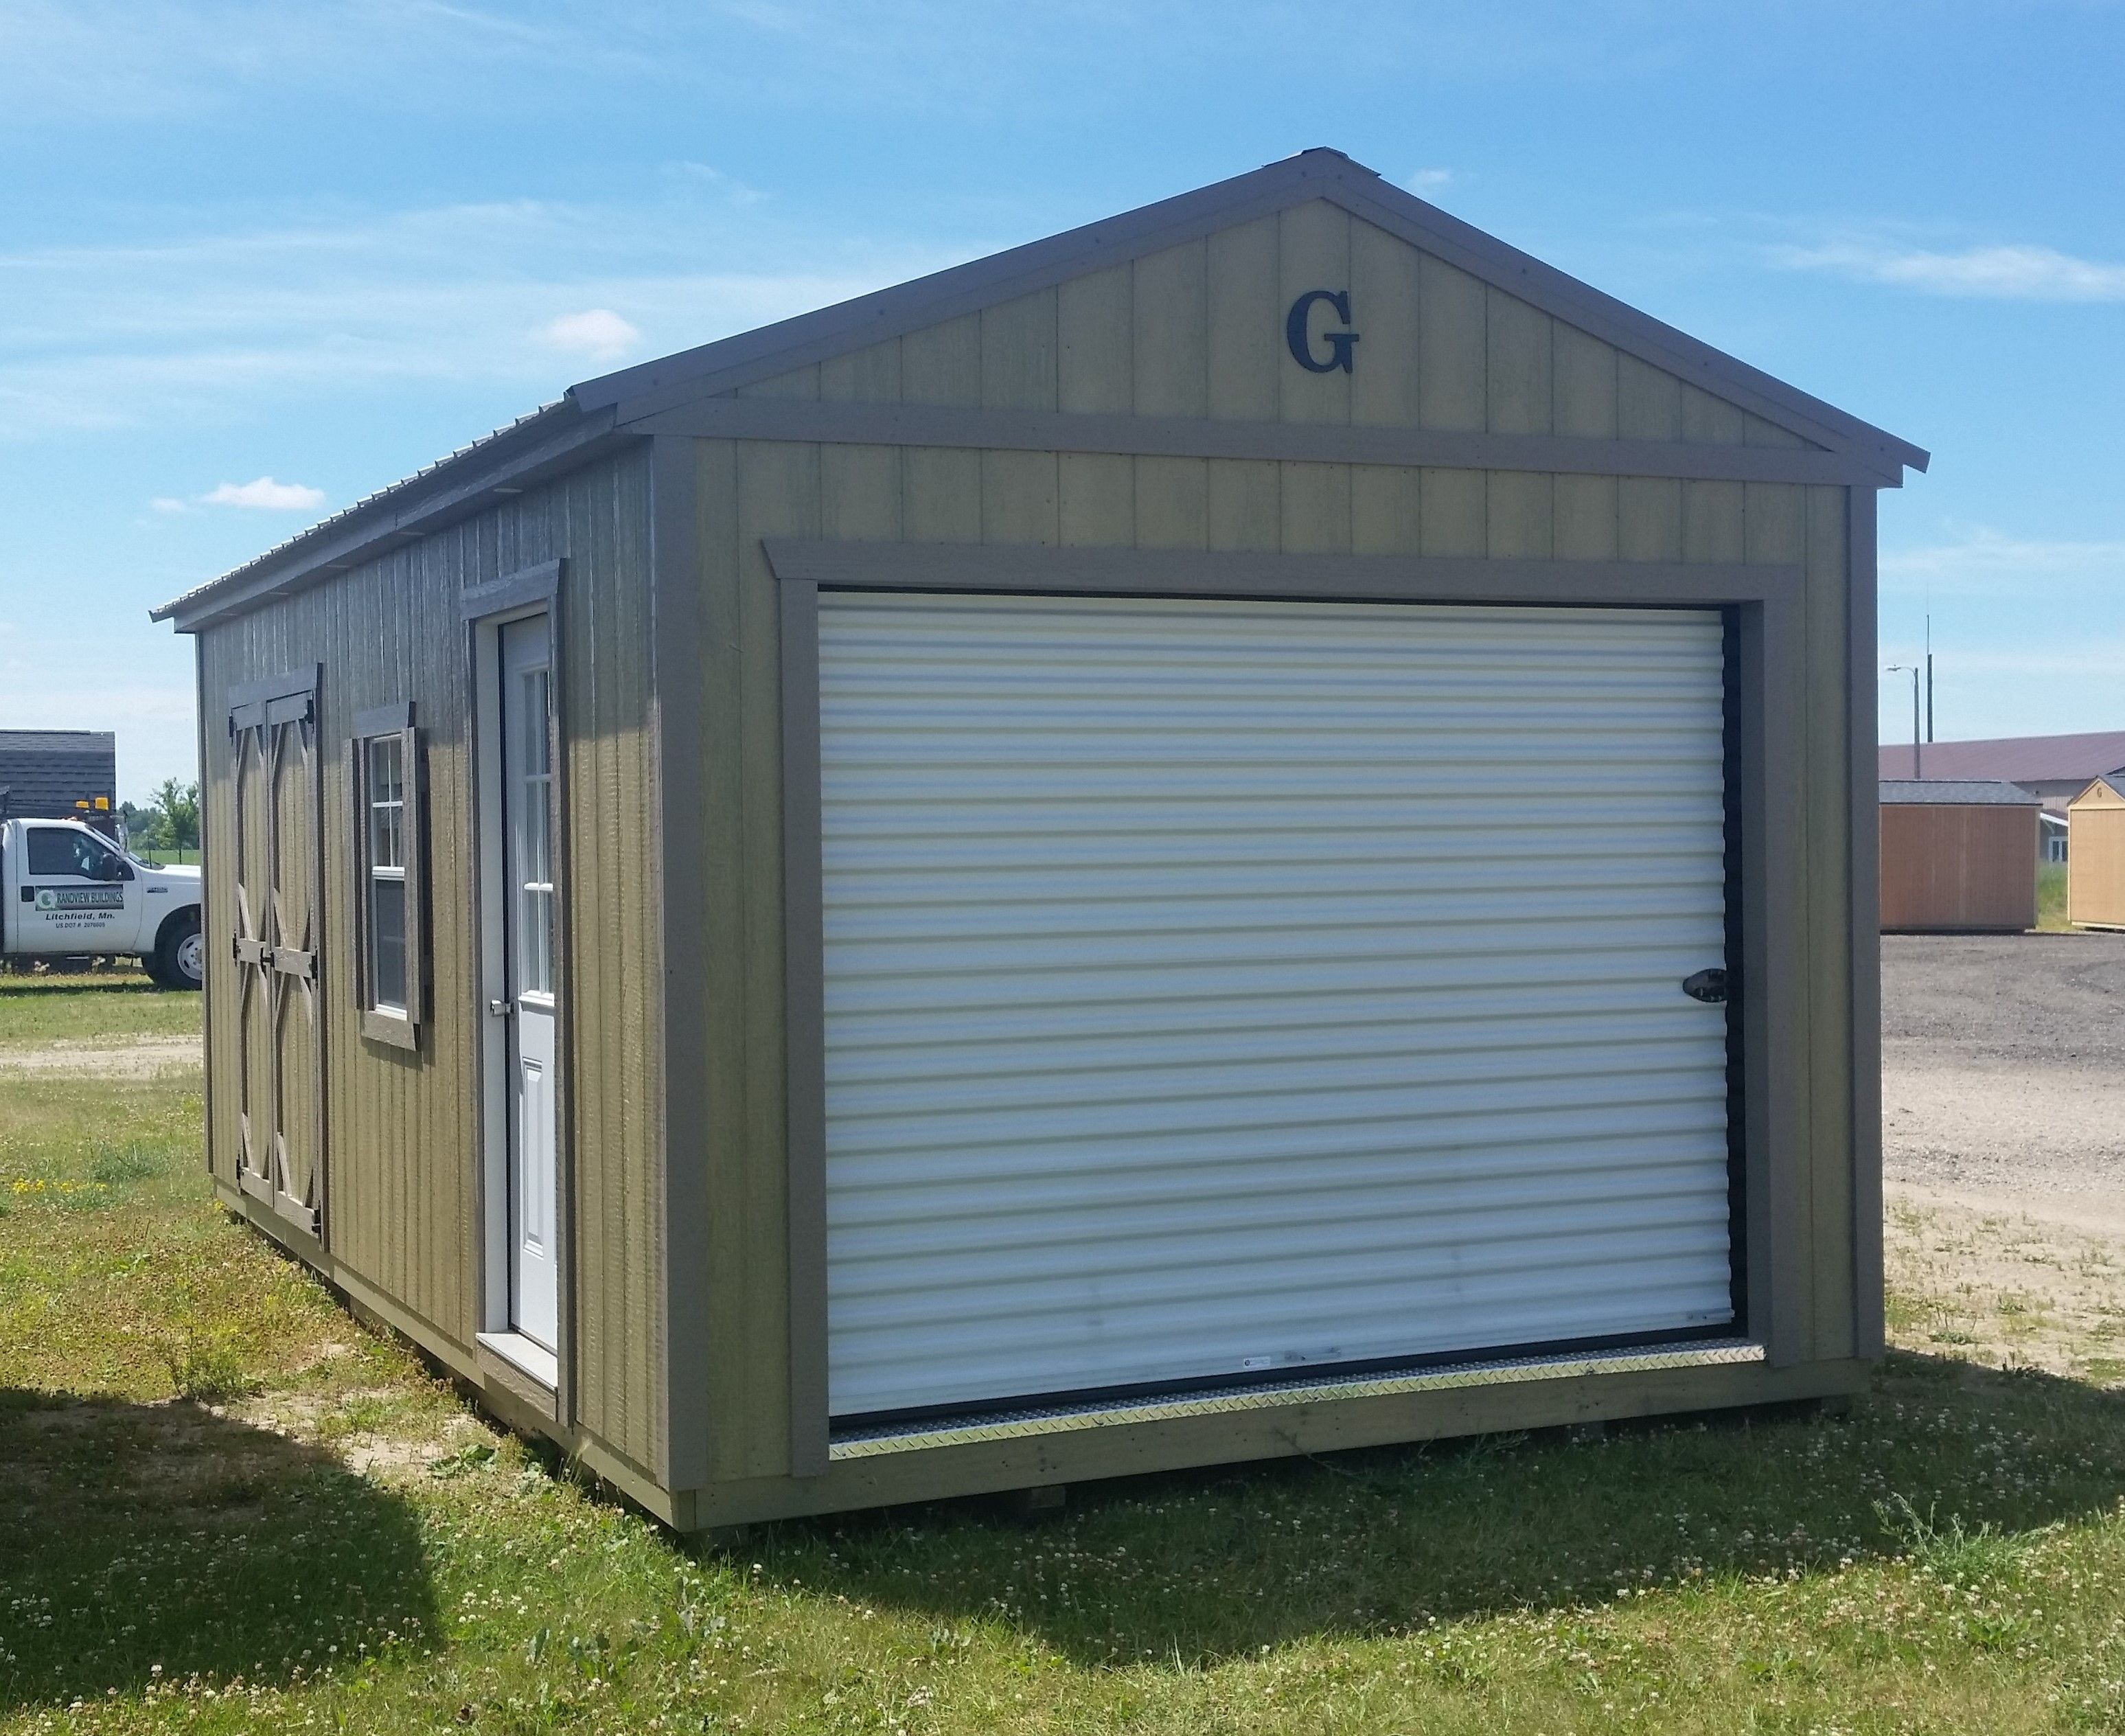 12x24 Garage Buckskin Colored Metal Roof With Matching Trim And Shutters Lp Smartside Siding With Haley Nat Garage Door Styles Garage Door Types Metal Roof